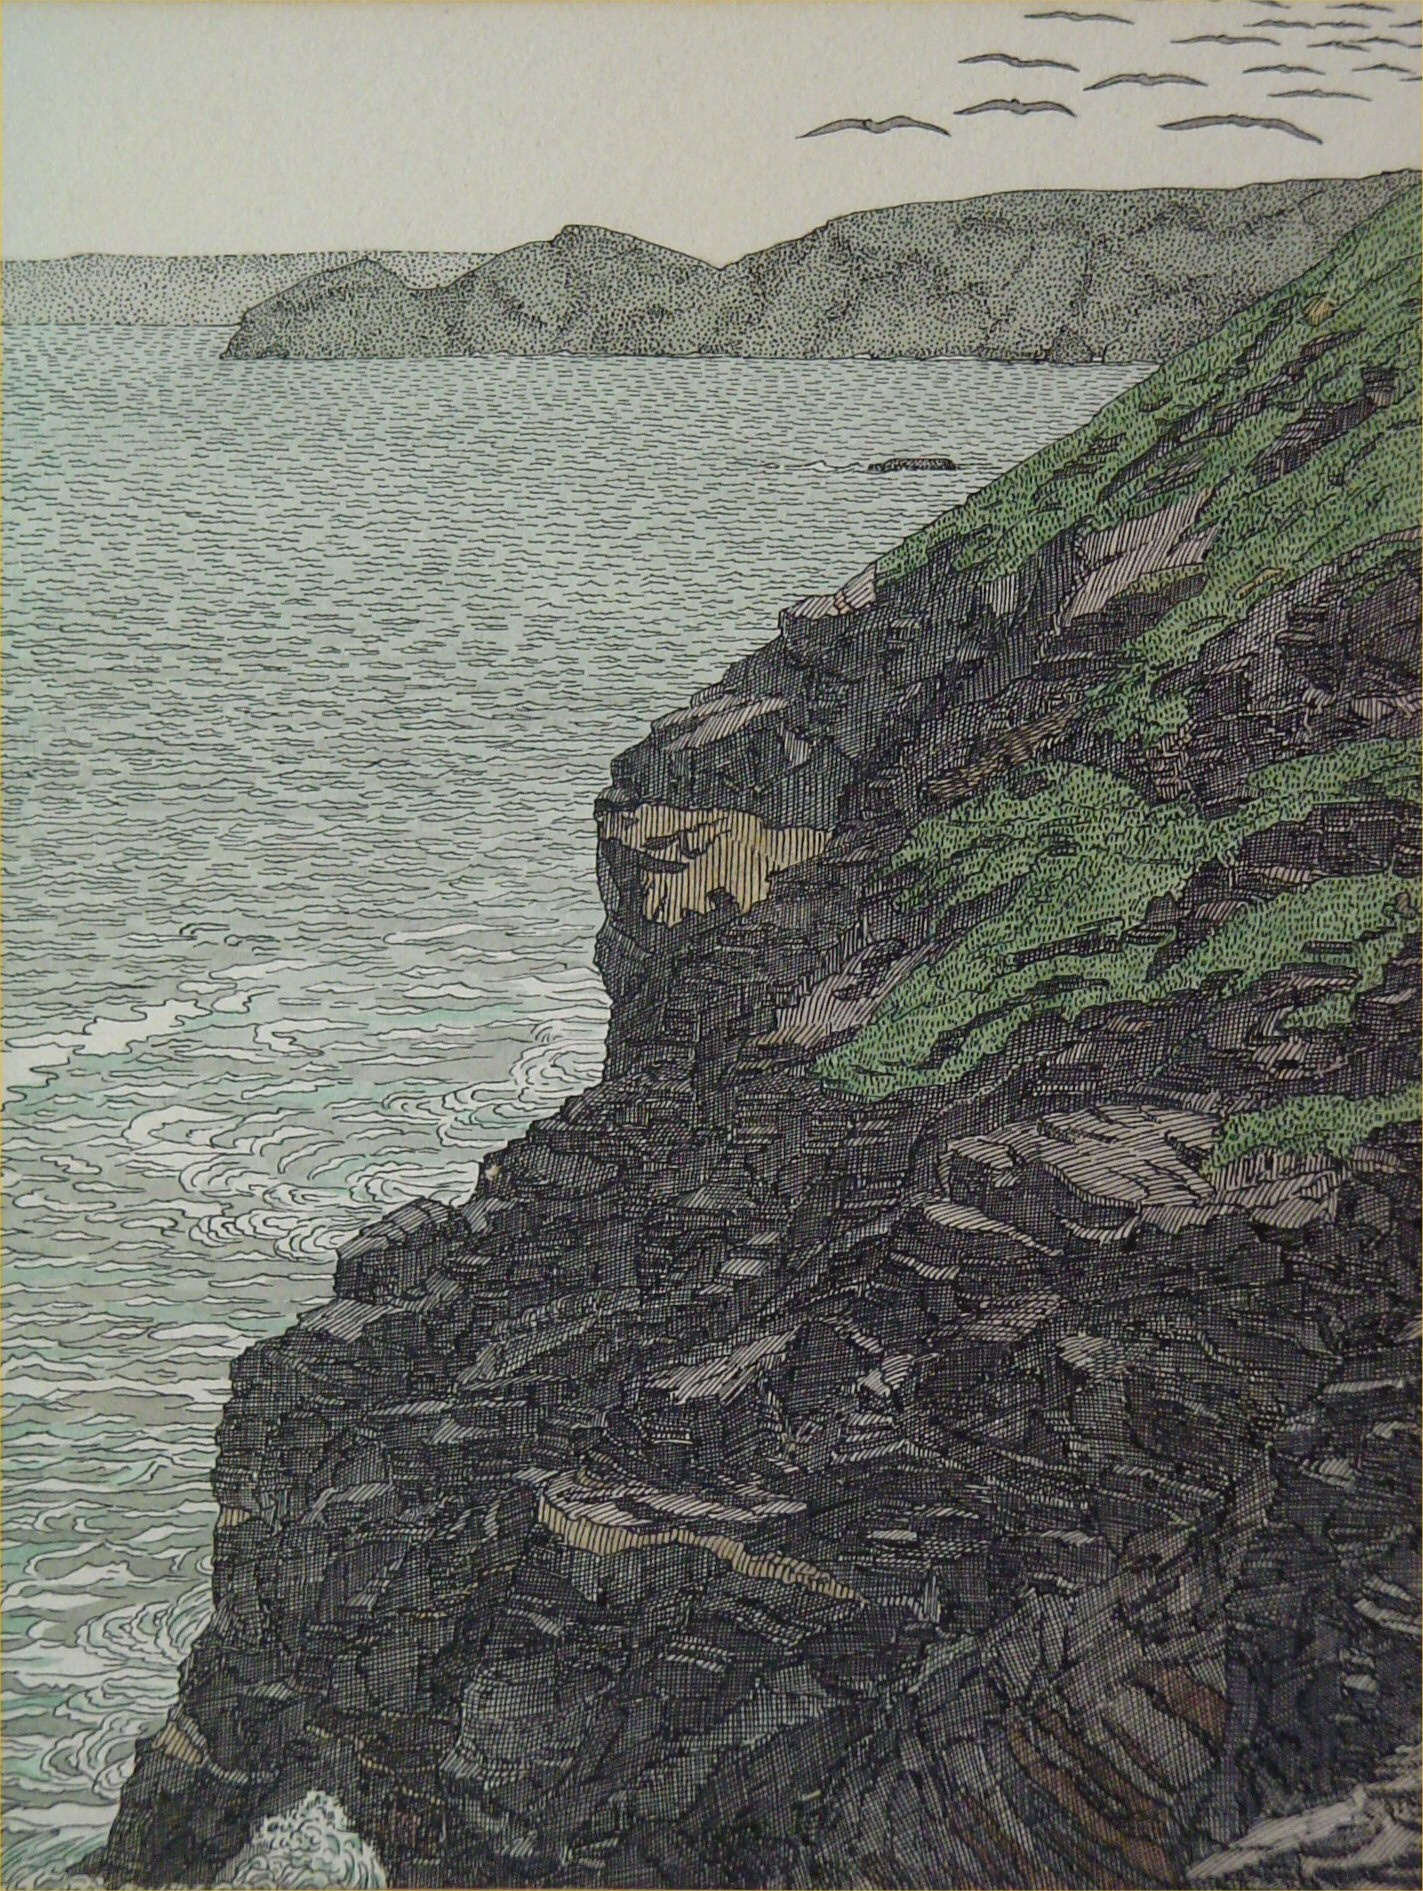 'Study for Dorset Coast' by Charles Ginner. Watercolour, dated 1922